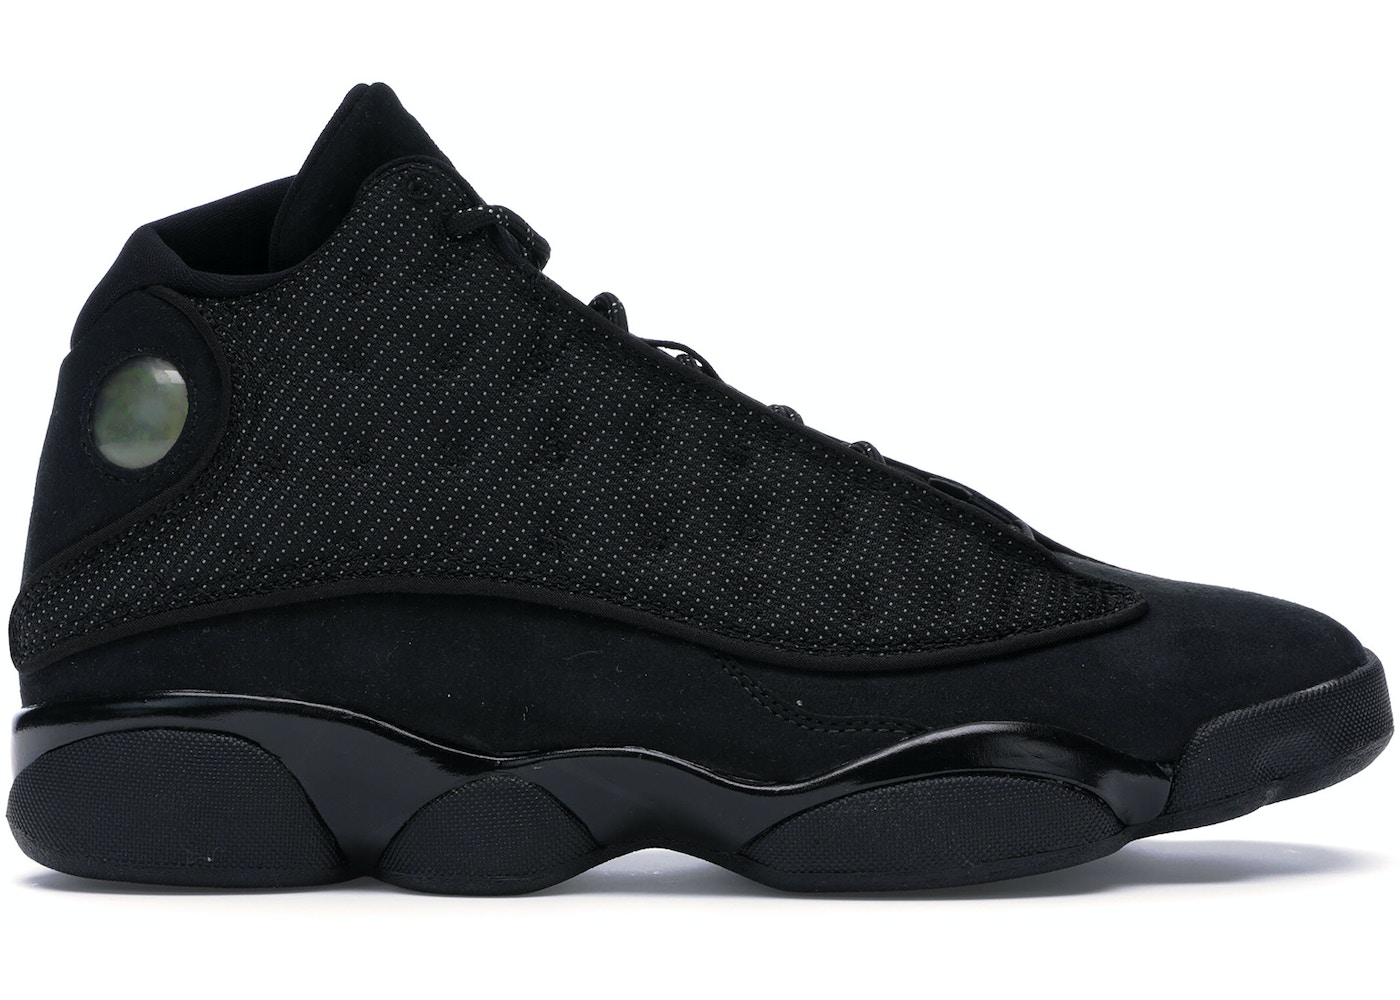 release date: 452a7 bb41c Jordan 13 Retro Black Cat - 414571-011